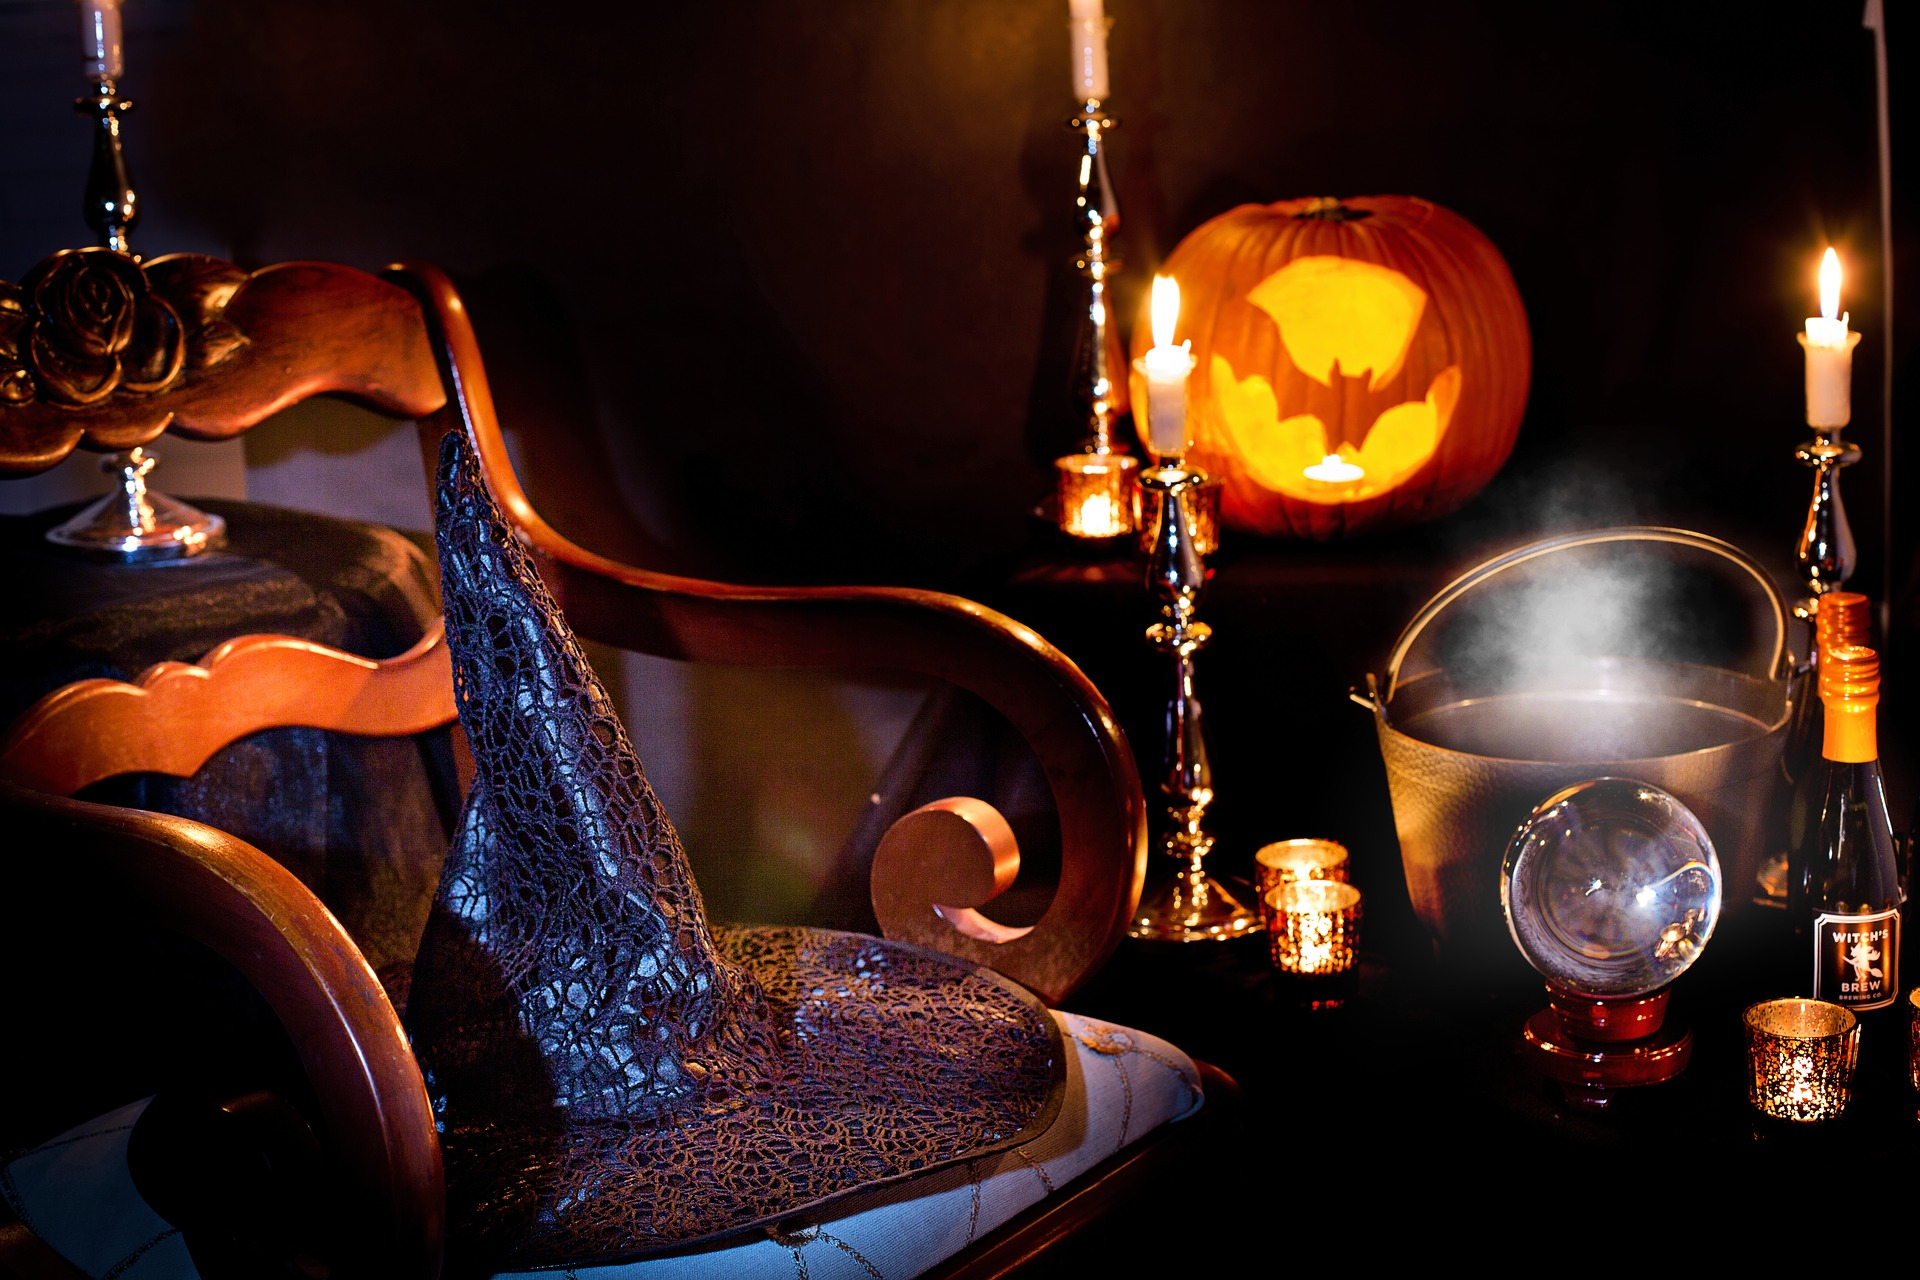 Ask the Expert: Halloween Safety Tips